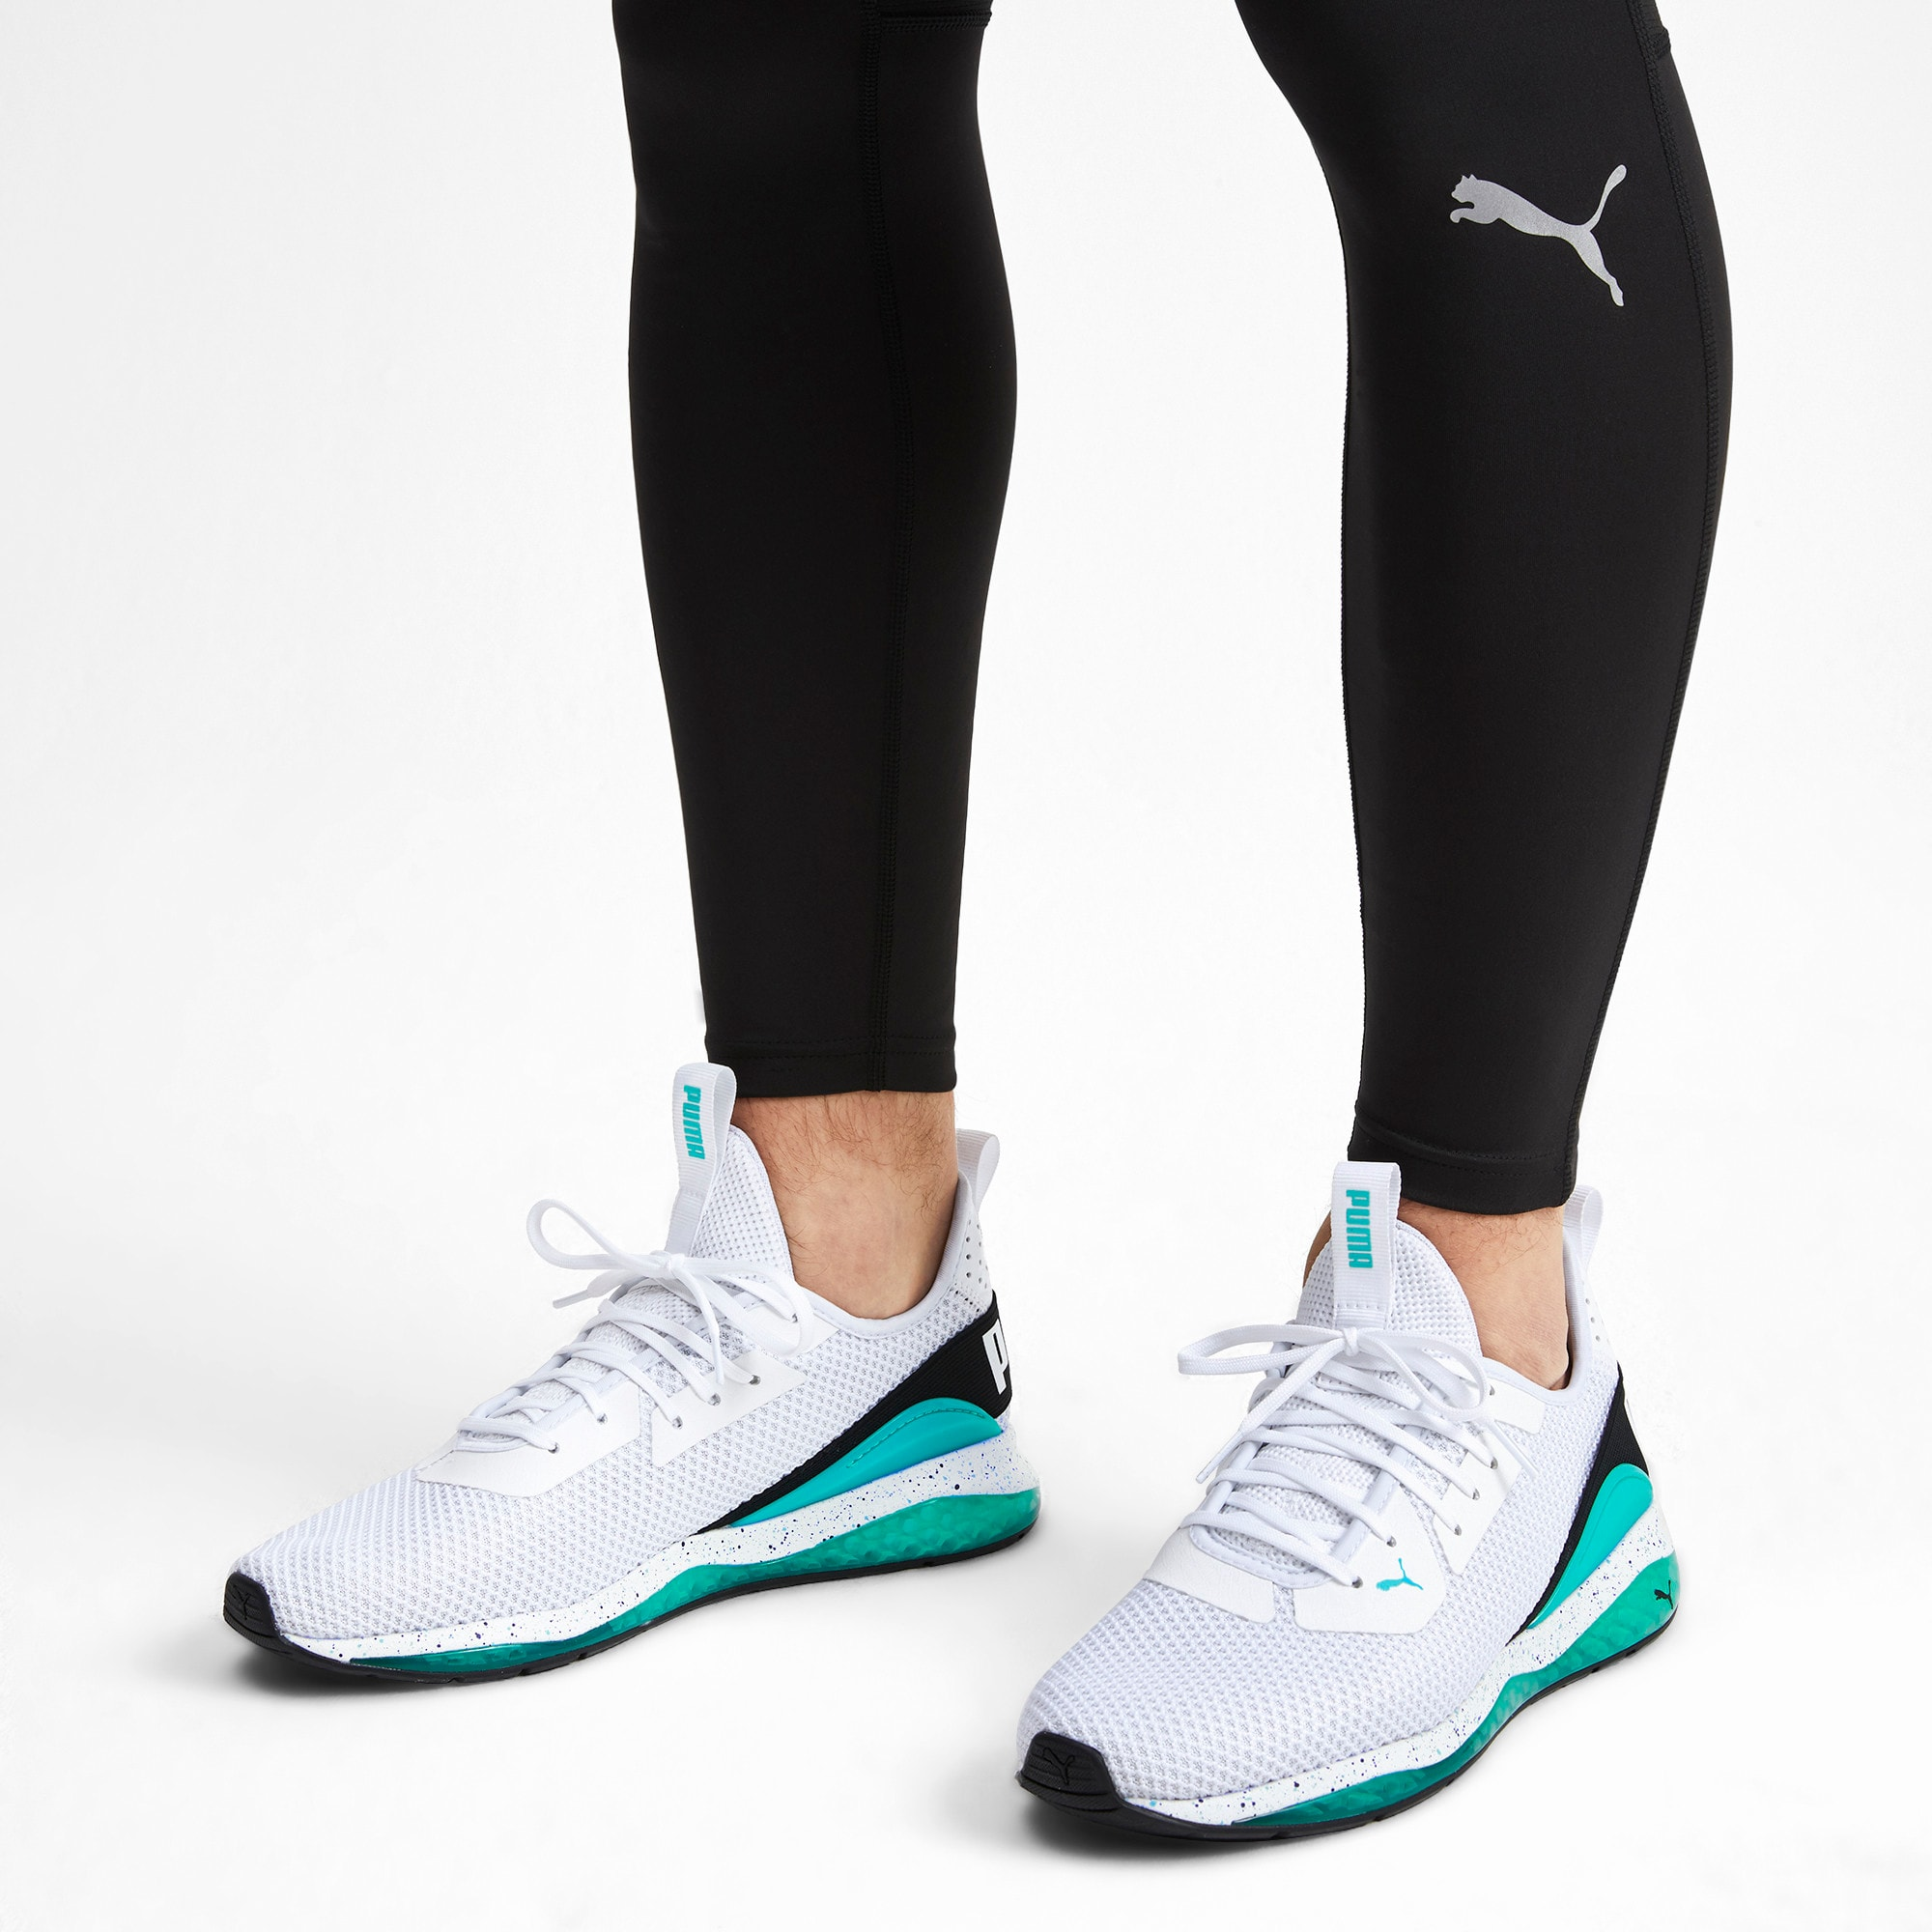 Thumbnail 2 of Cell Descend Weave Running Trainers, White-Black-Blue Turquoise, medium-IND